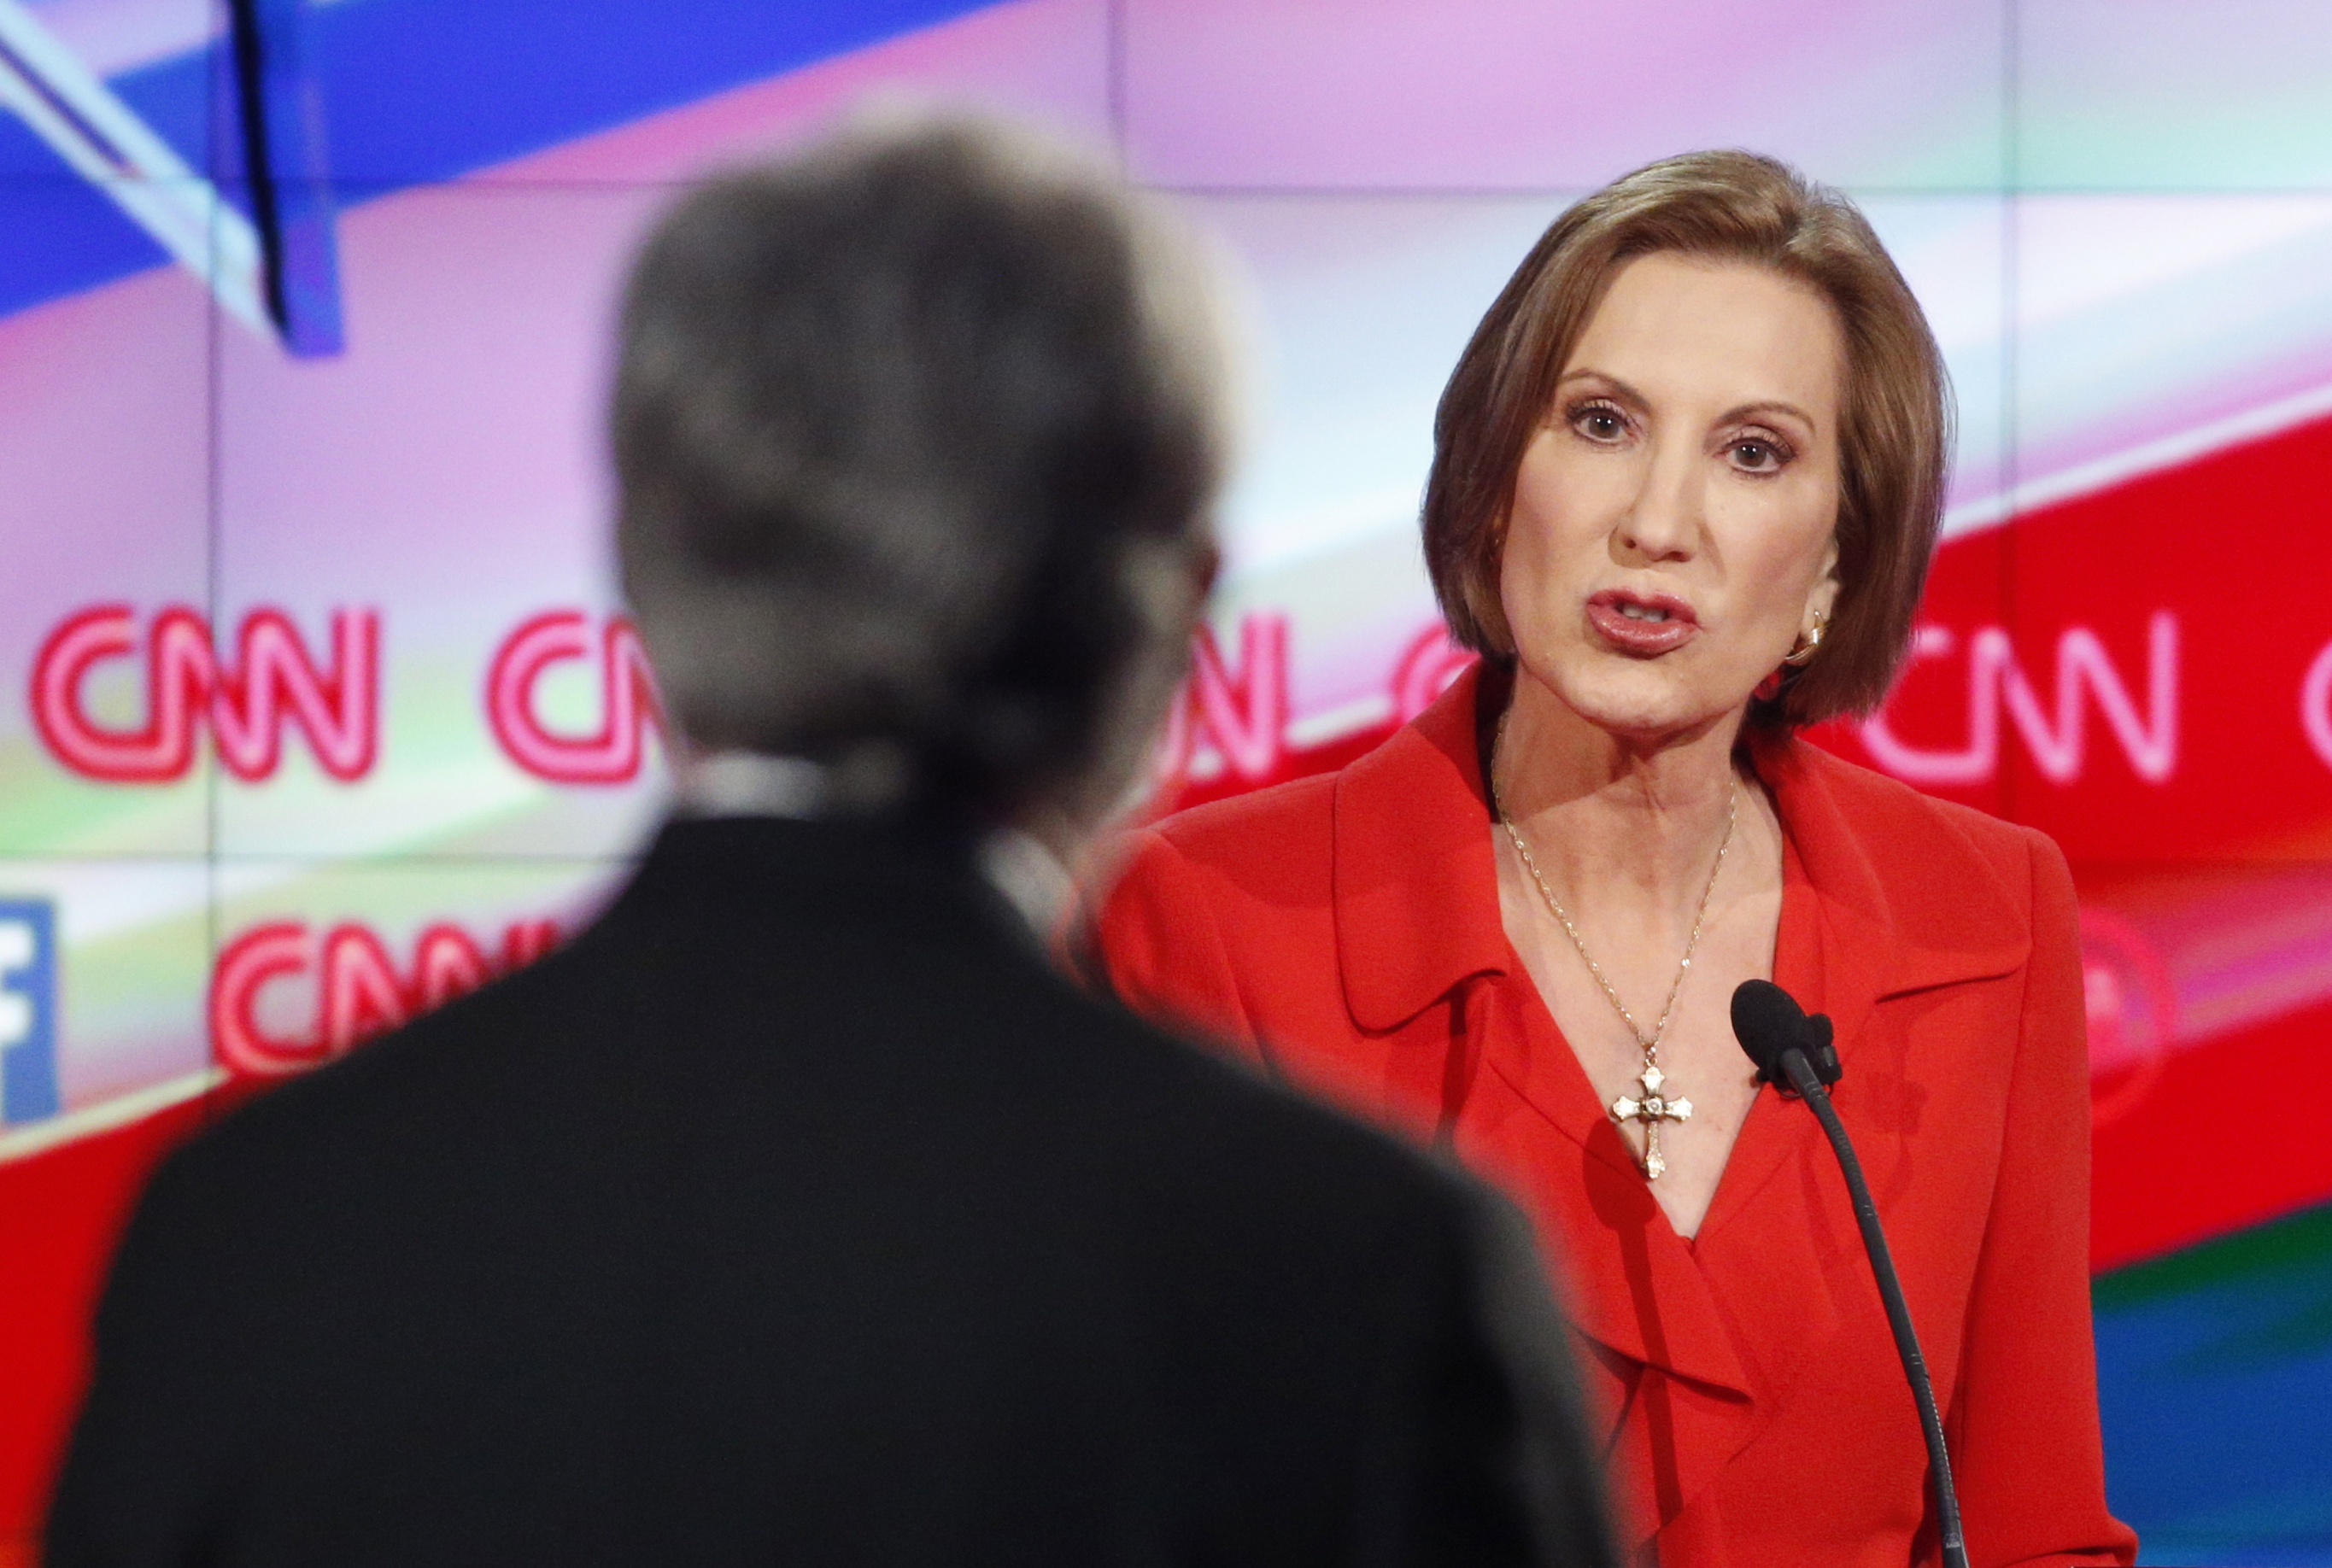 Carly Fiorina responds to debate moderator Wolf Blitzer during the CNN Republican presidential debate at the Venetian Hotel & Casino on Dec. 15, 2015, in Las Vegas.